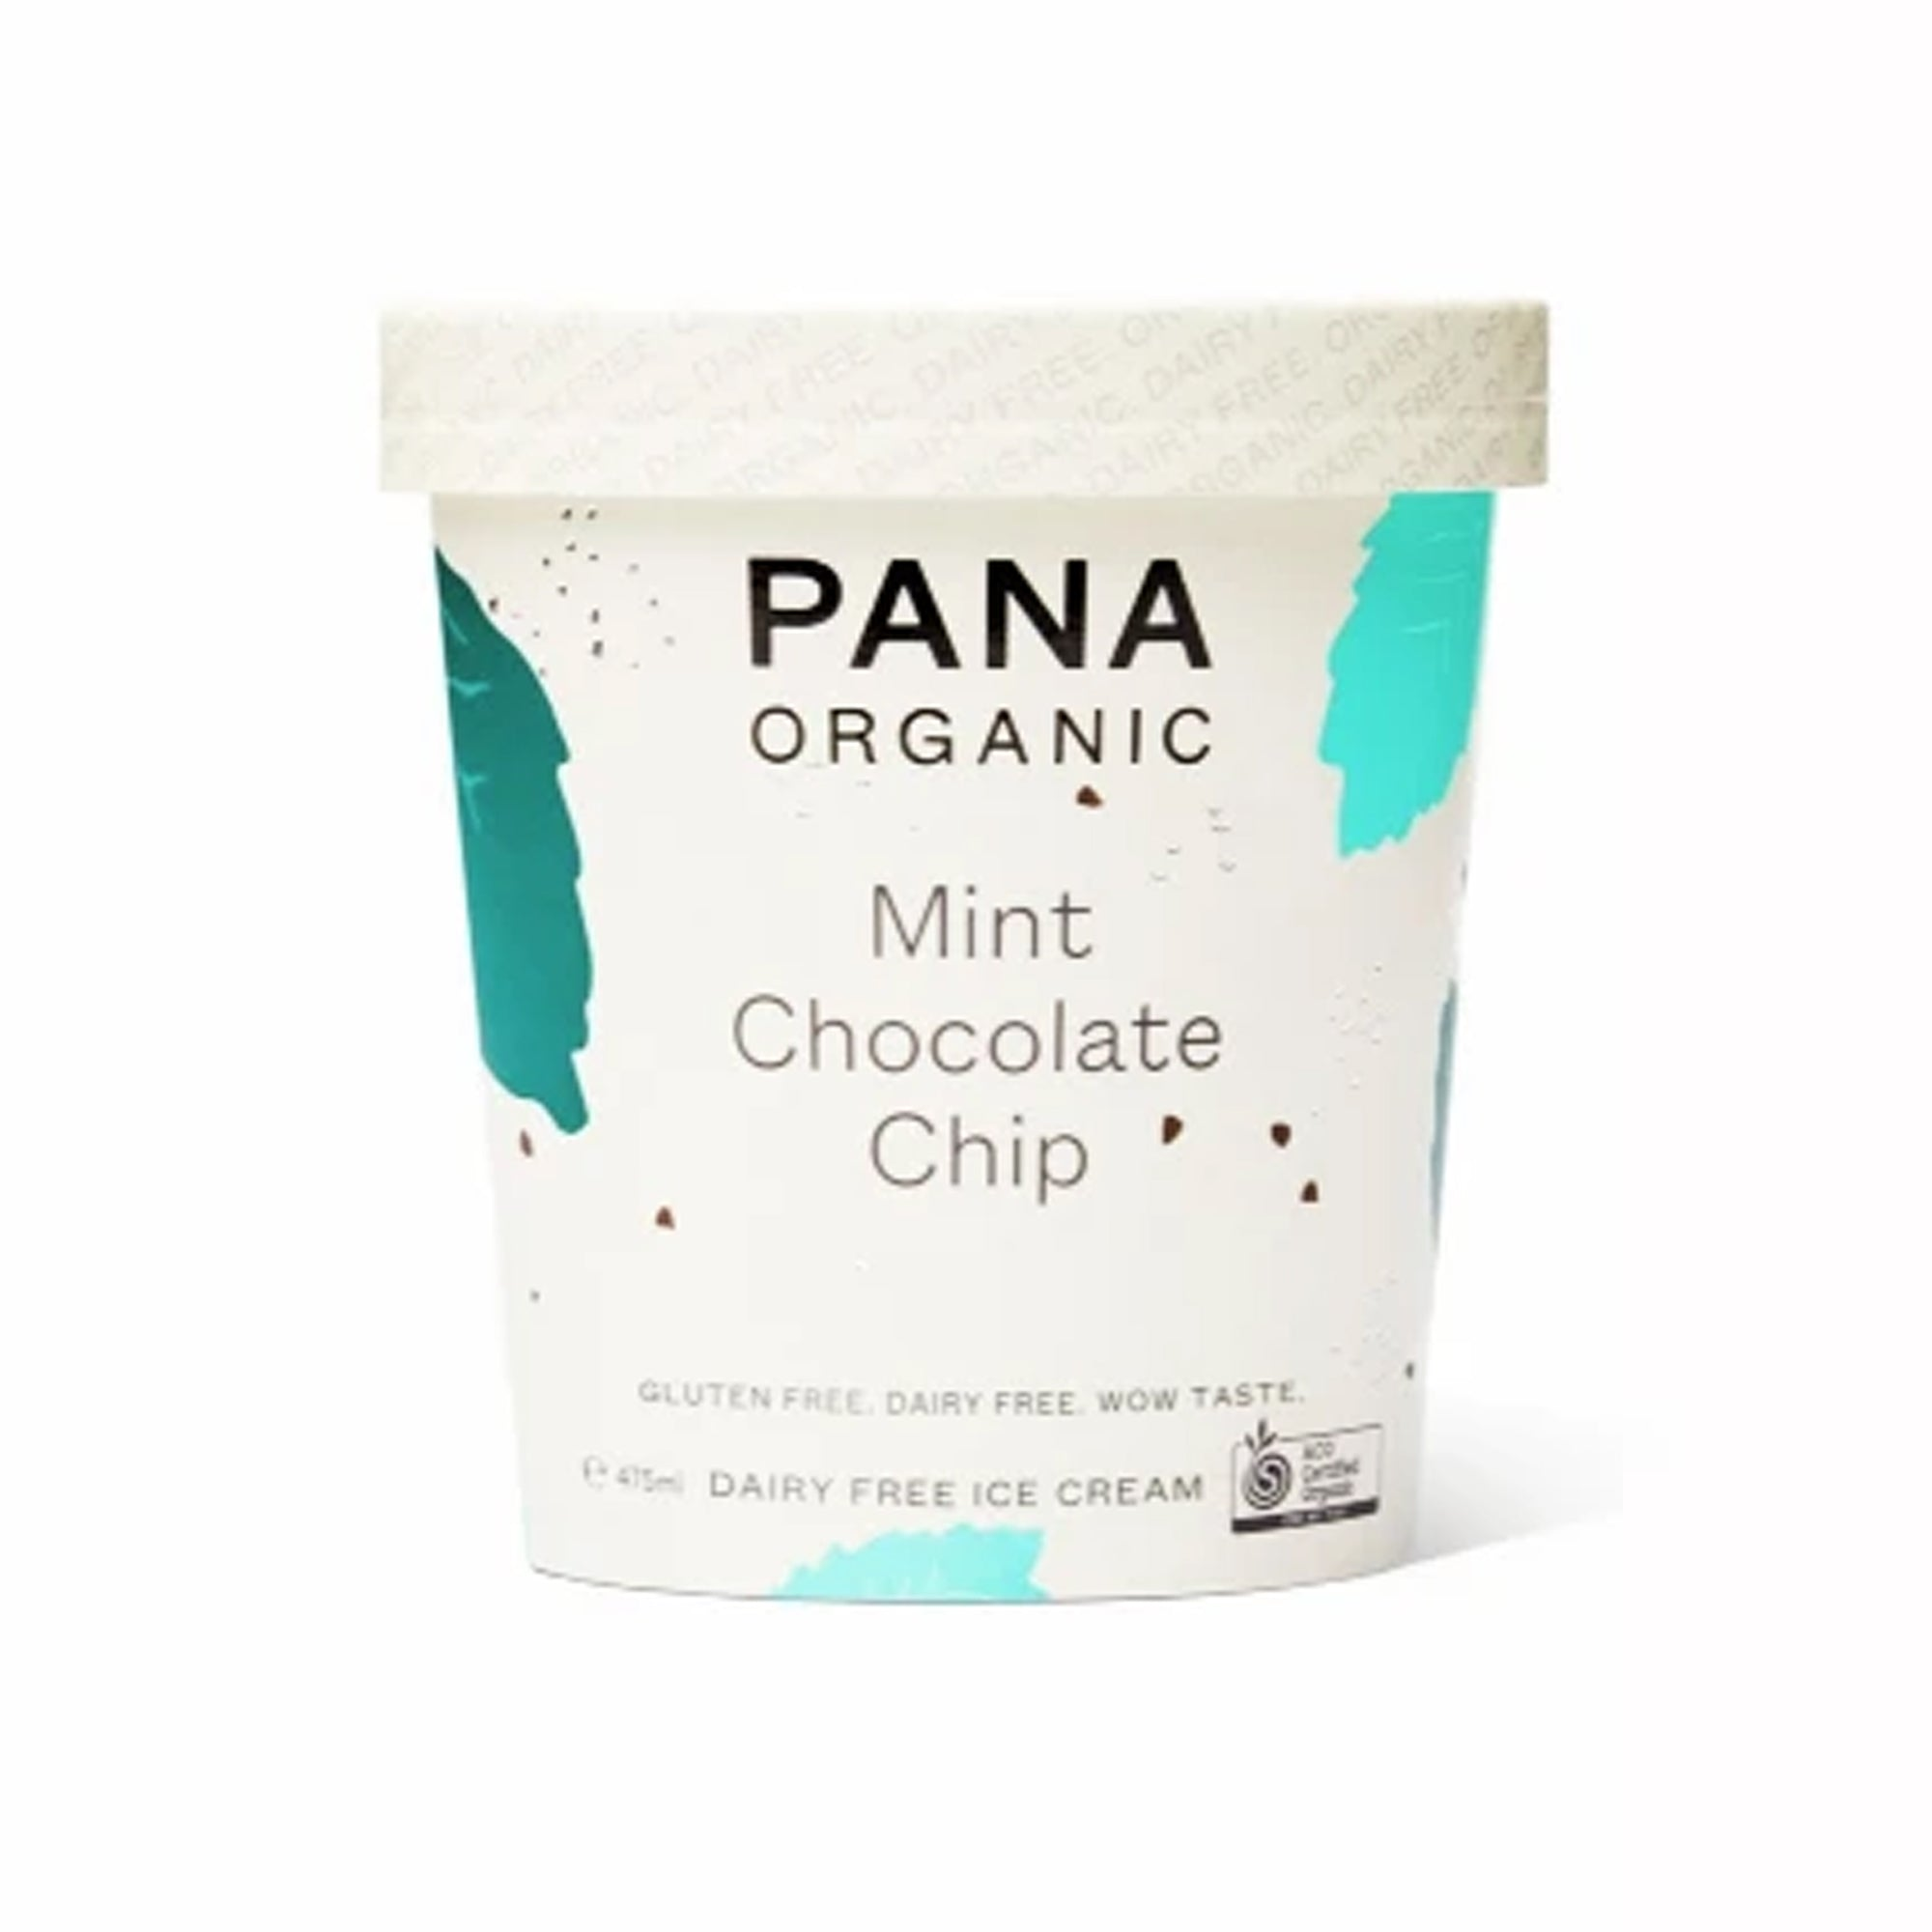 Pana Icecream - Tub - Mint Chocolate Chip 475ml